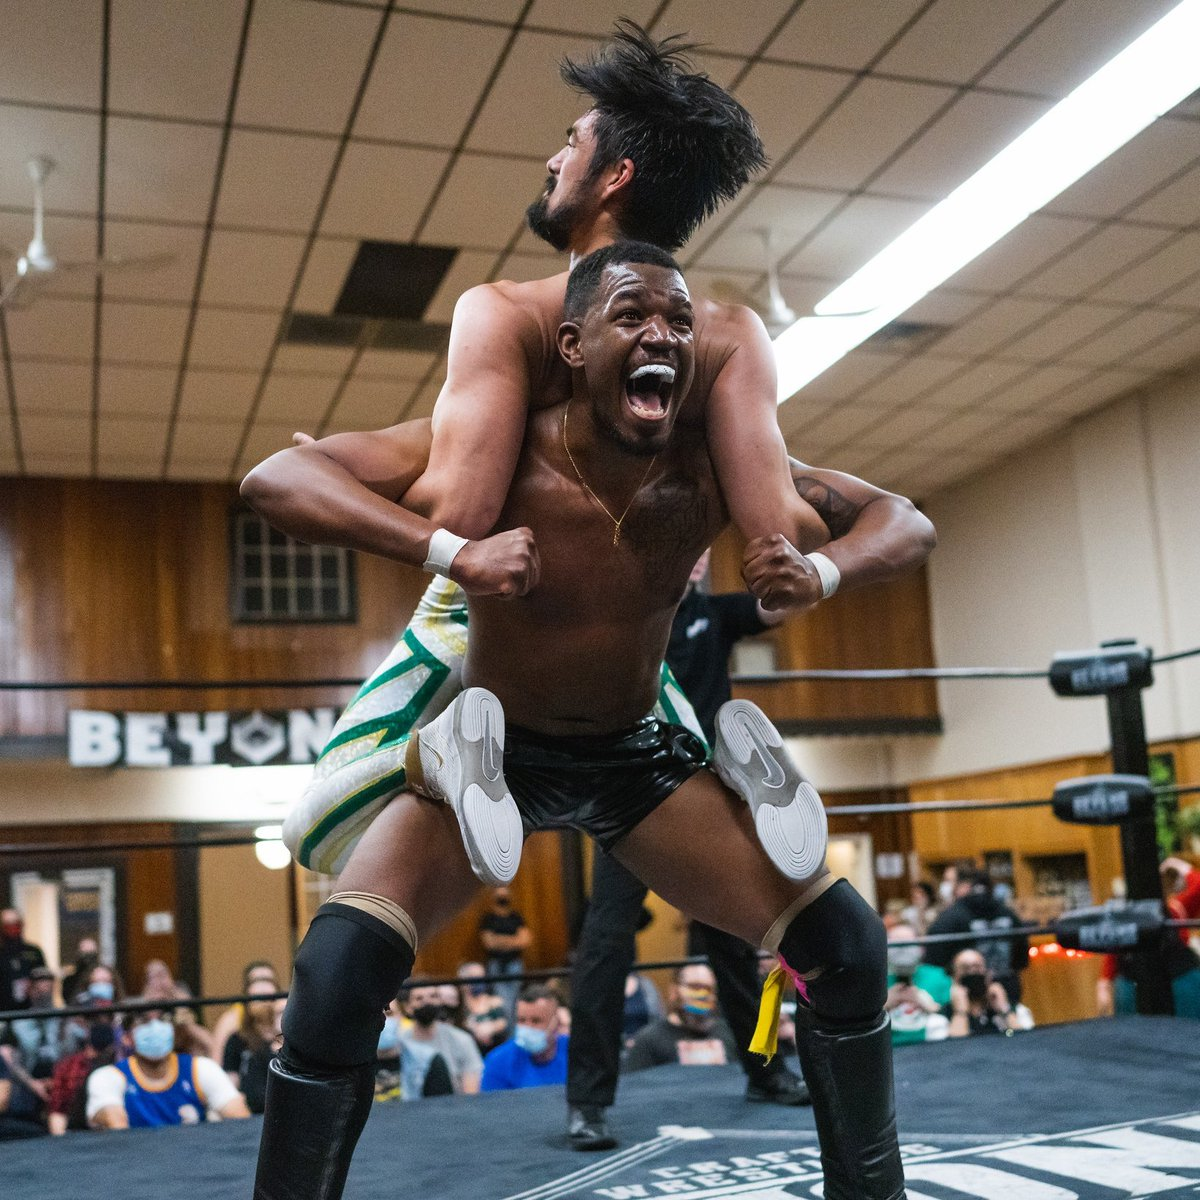 Last month's #ProjectReality event is one of our most-watched ever right behind #HeavyLiesTheCrown and #WearSunscreen.  With no wrestling on TV tonight, please watch the replay on @indiewrestling if you have not already.  We stream #ProjectDolphin LIVE tomorrow night at 8pm ET! https://t.co/6NrOhWHUe8